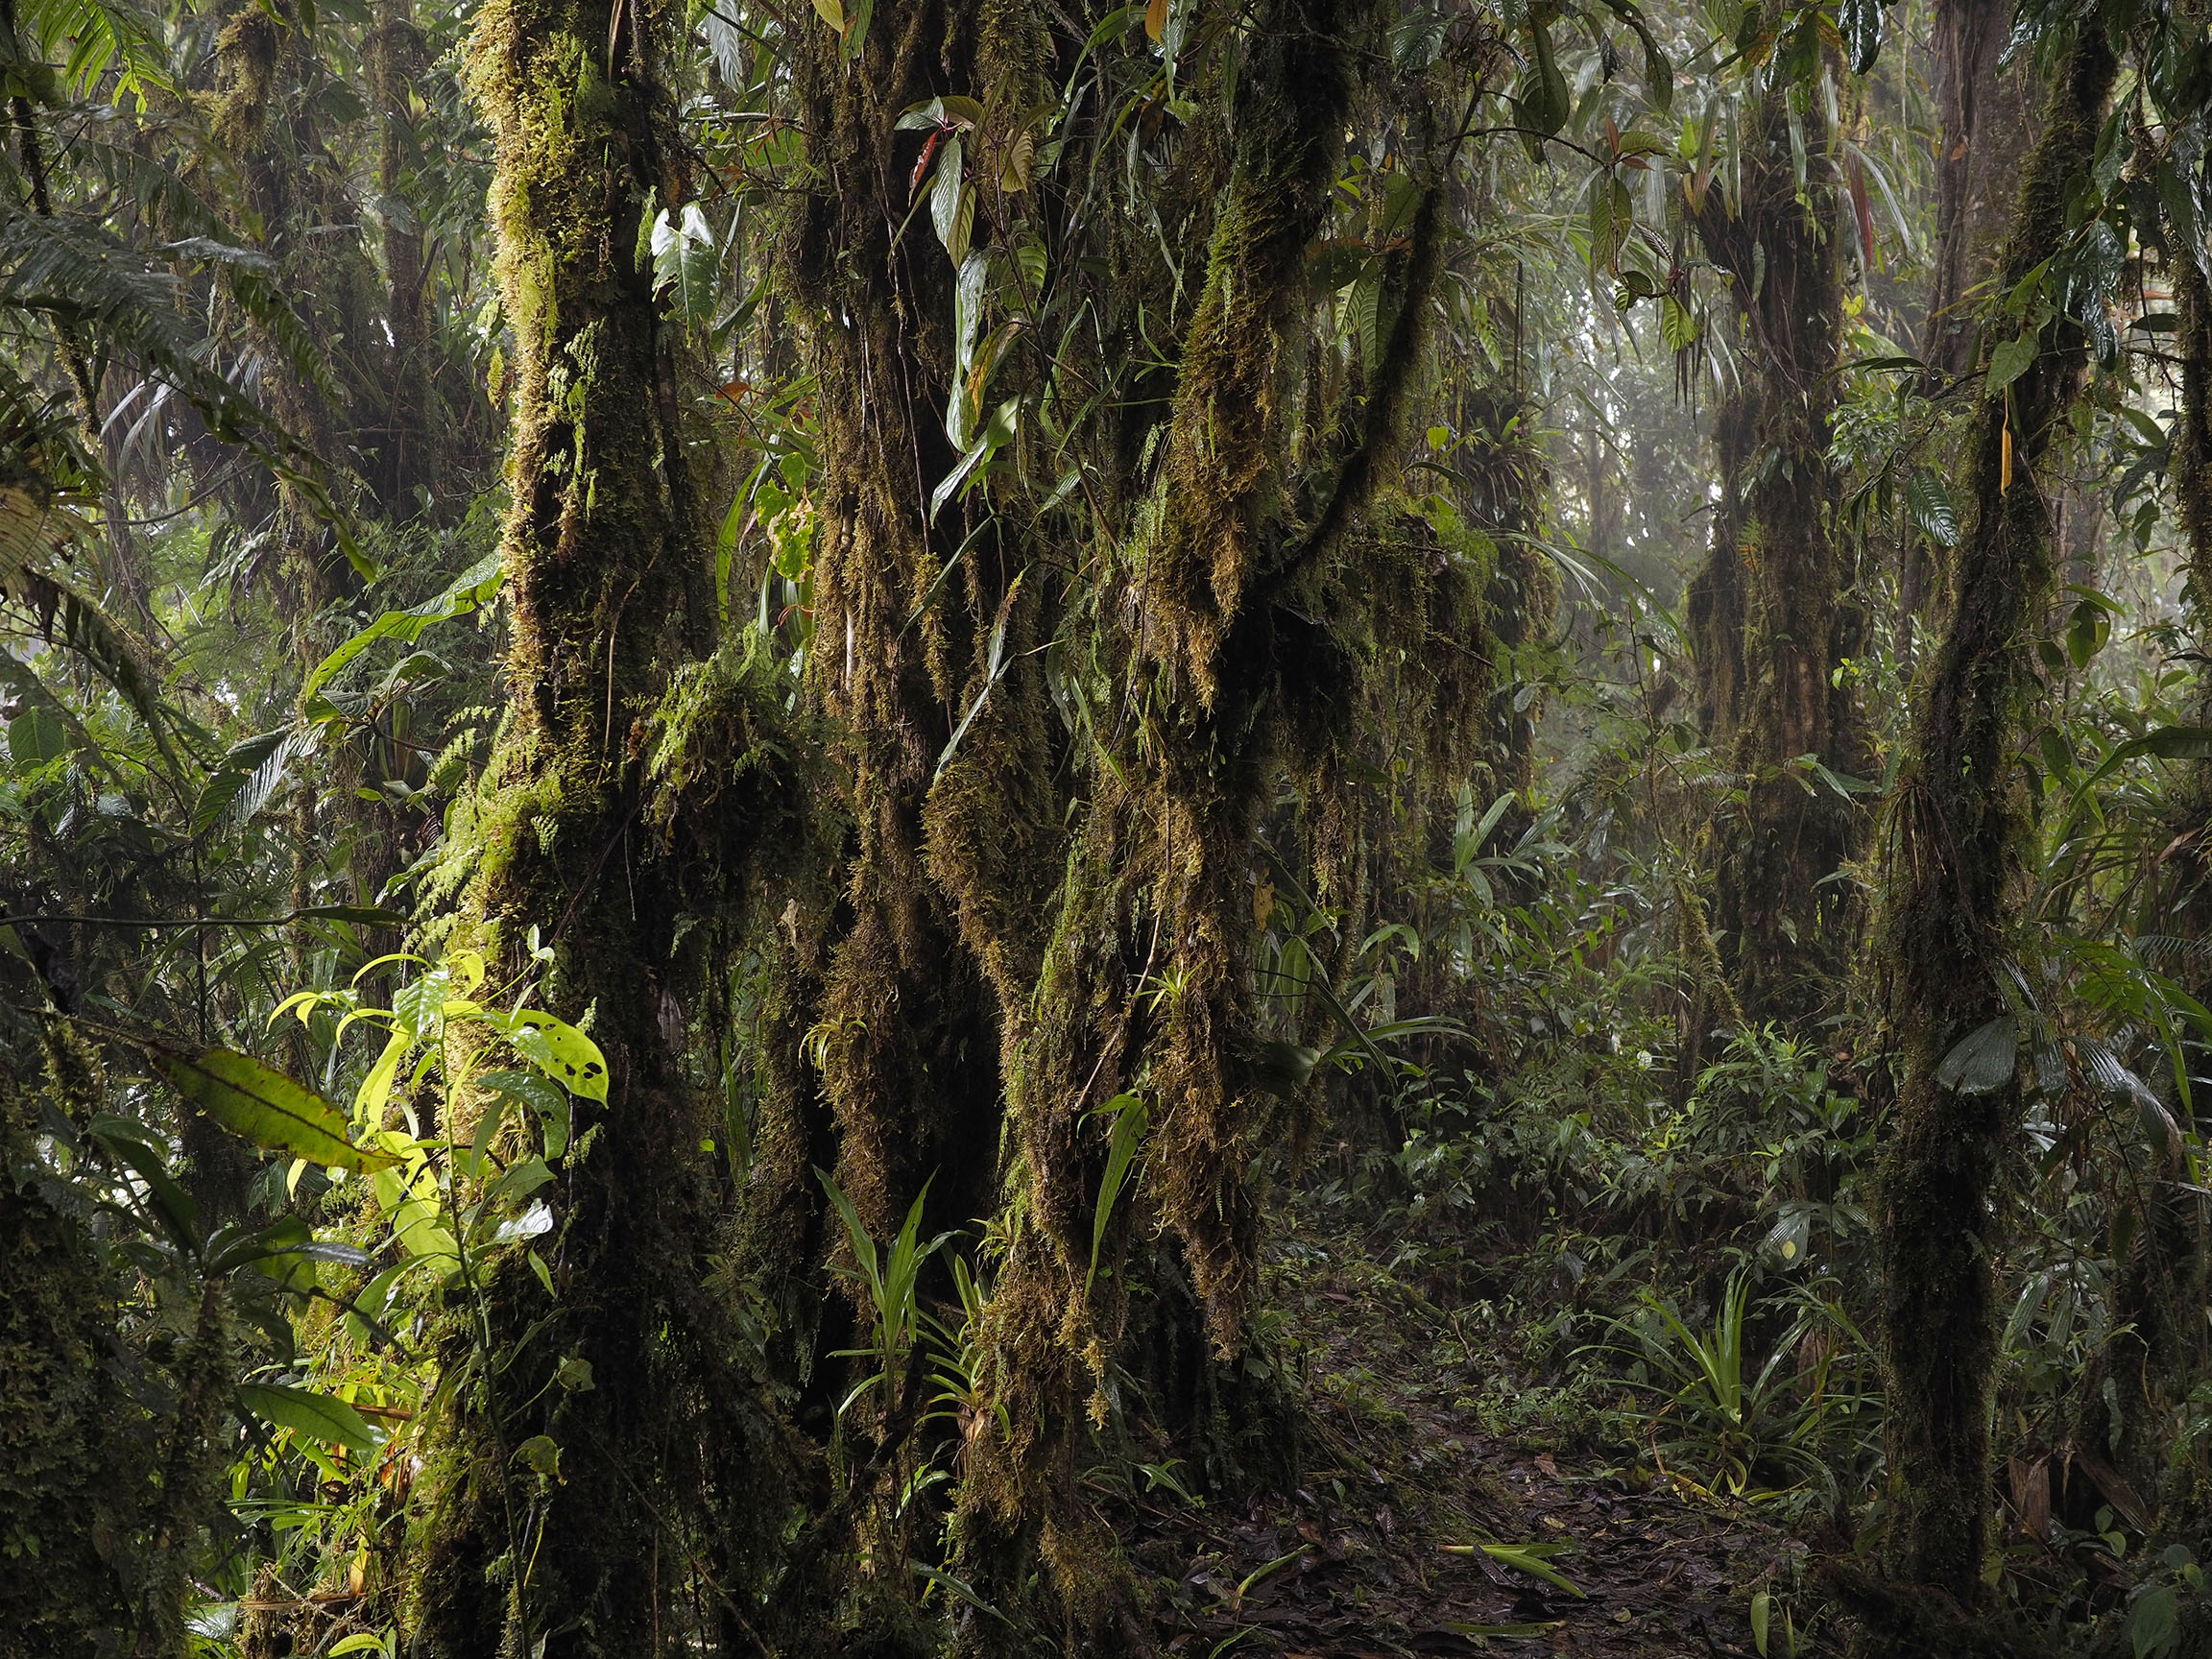 OLYMPUS DIGITAL CAMERA & Cloud forest images from our Rio Zunac Reserve and canopy access ...